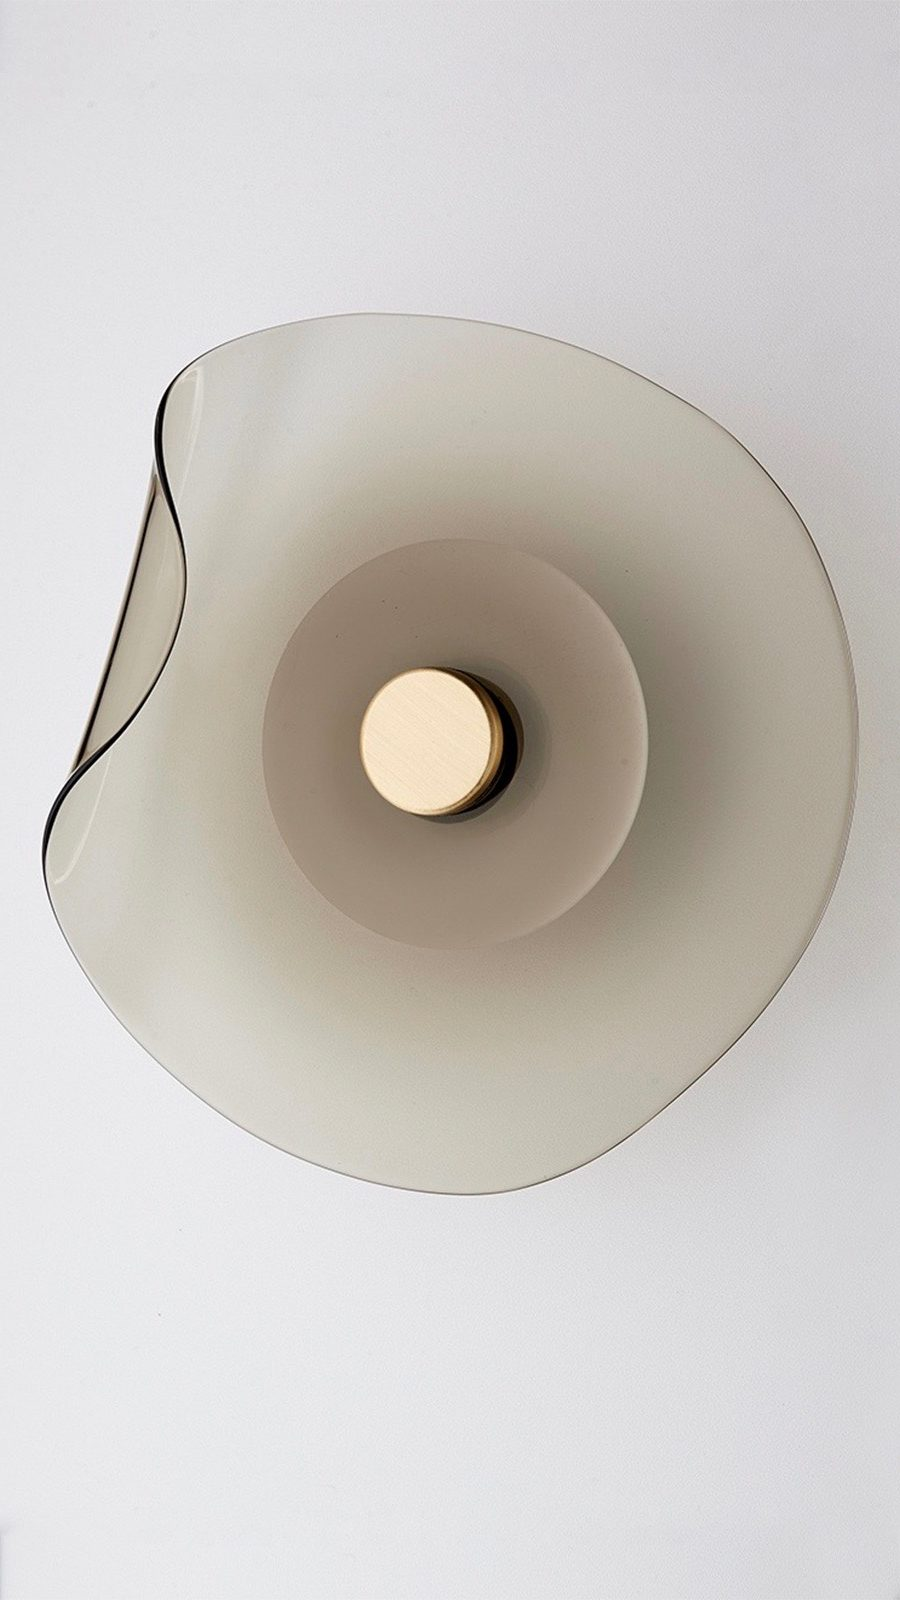 'Melt' wall sconce in 'smoke' from Articolo Architectural Lighting.